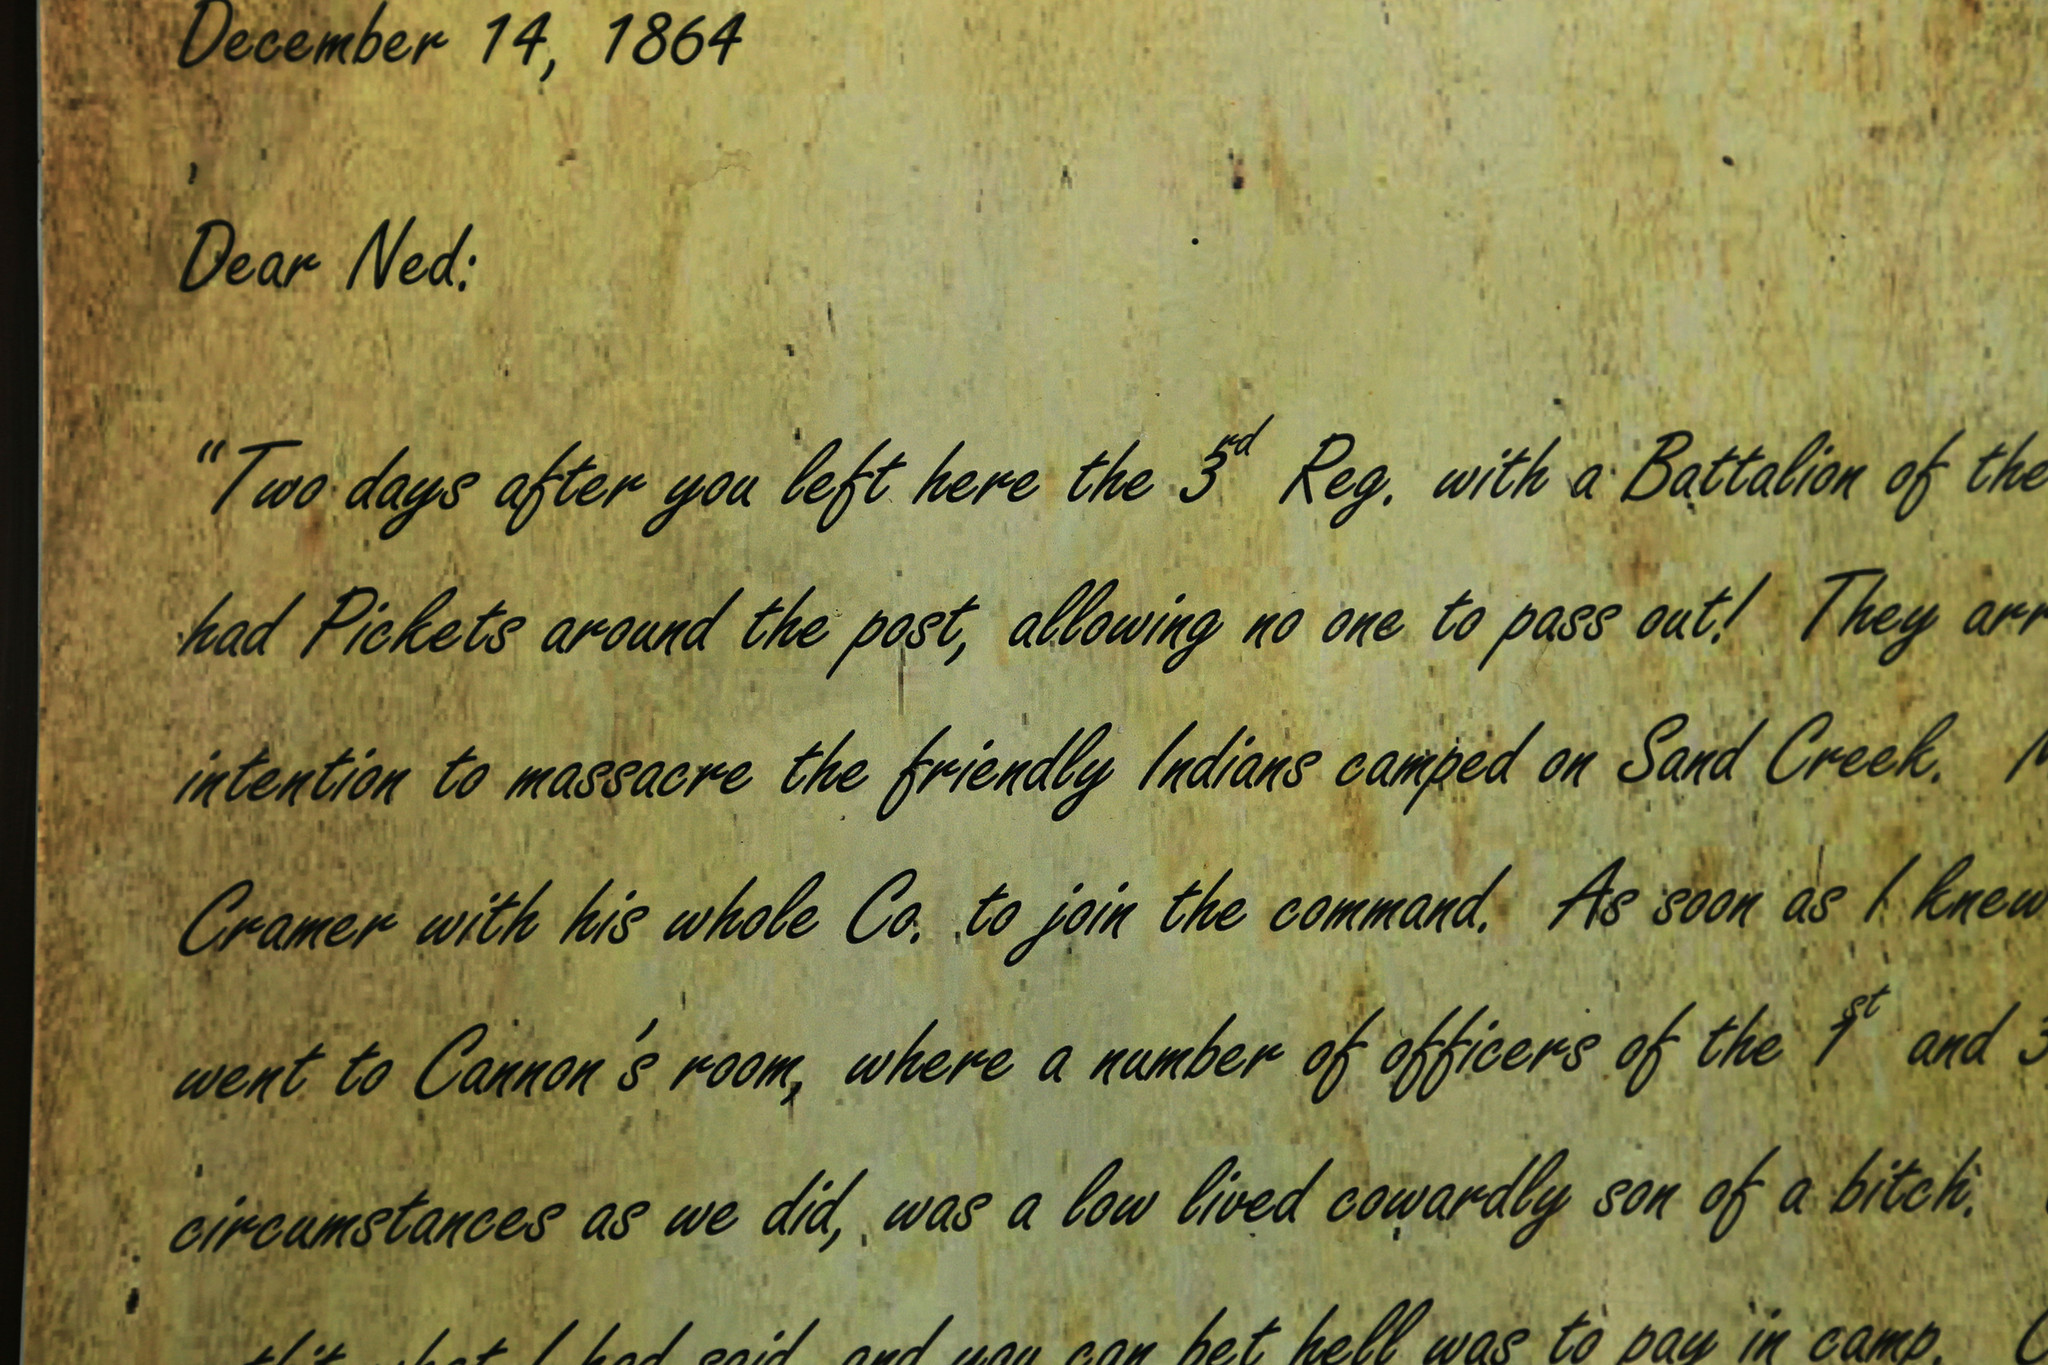 A detail of a letter written by a witness of the massacre.